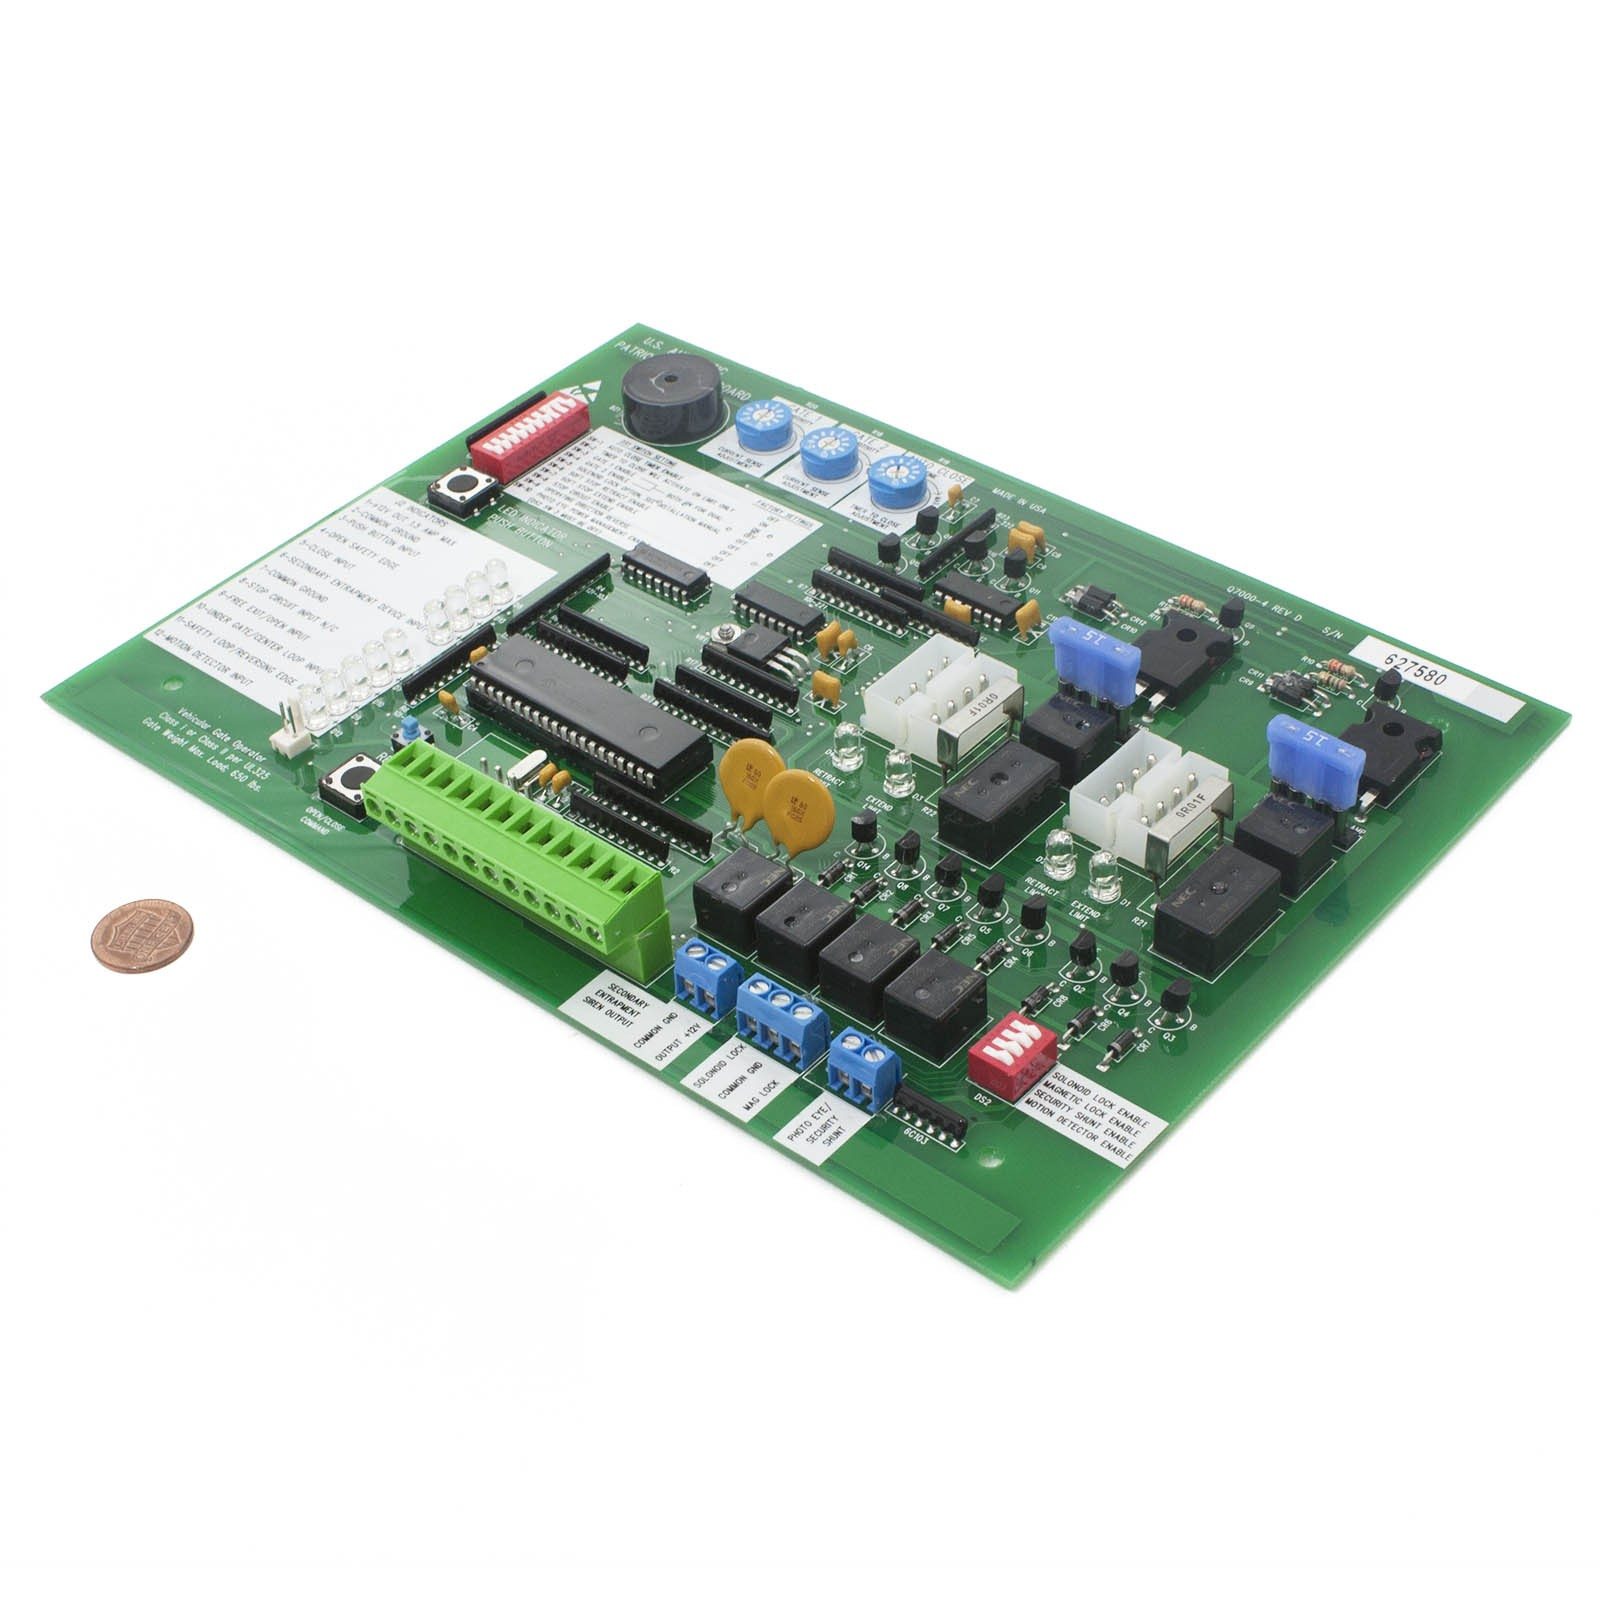 Control Board For Patriot And Rsl Usautomatic 500001 Controller Image Gate Opener Circuit Panel